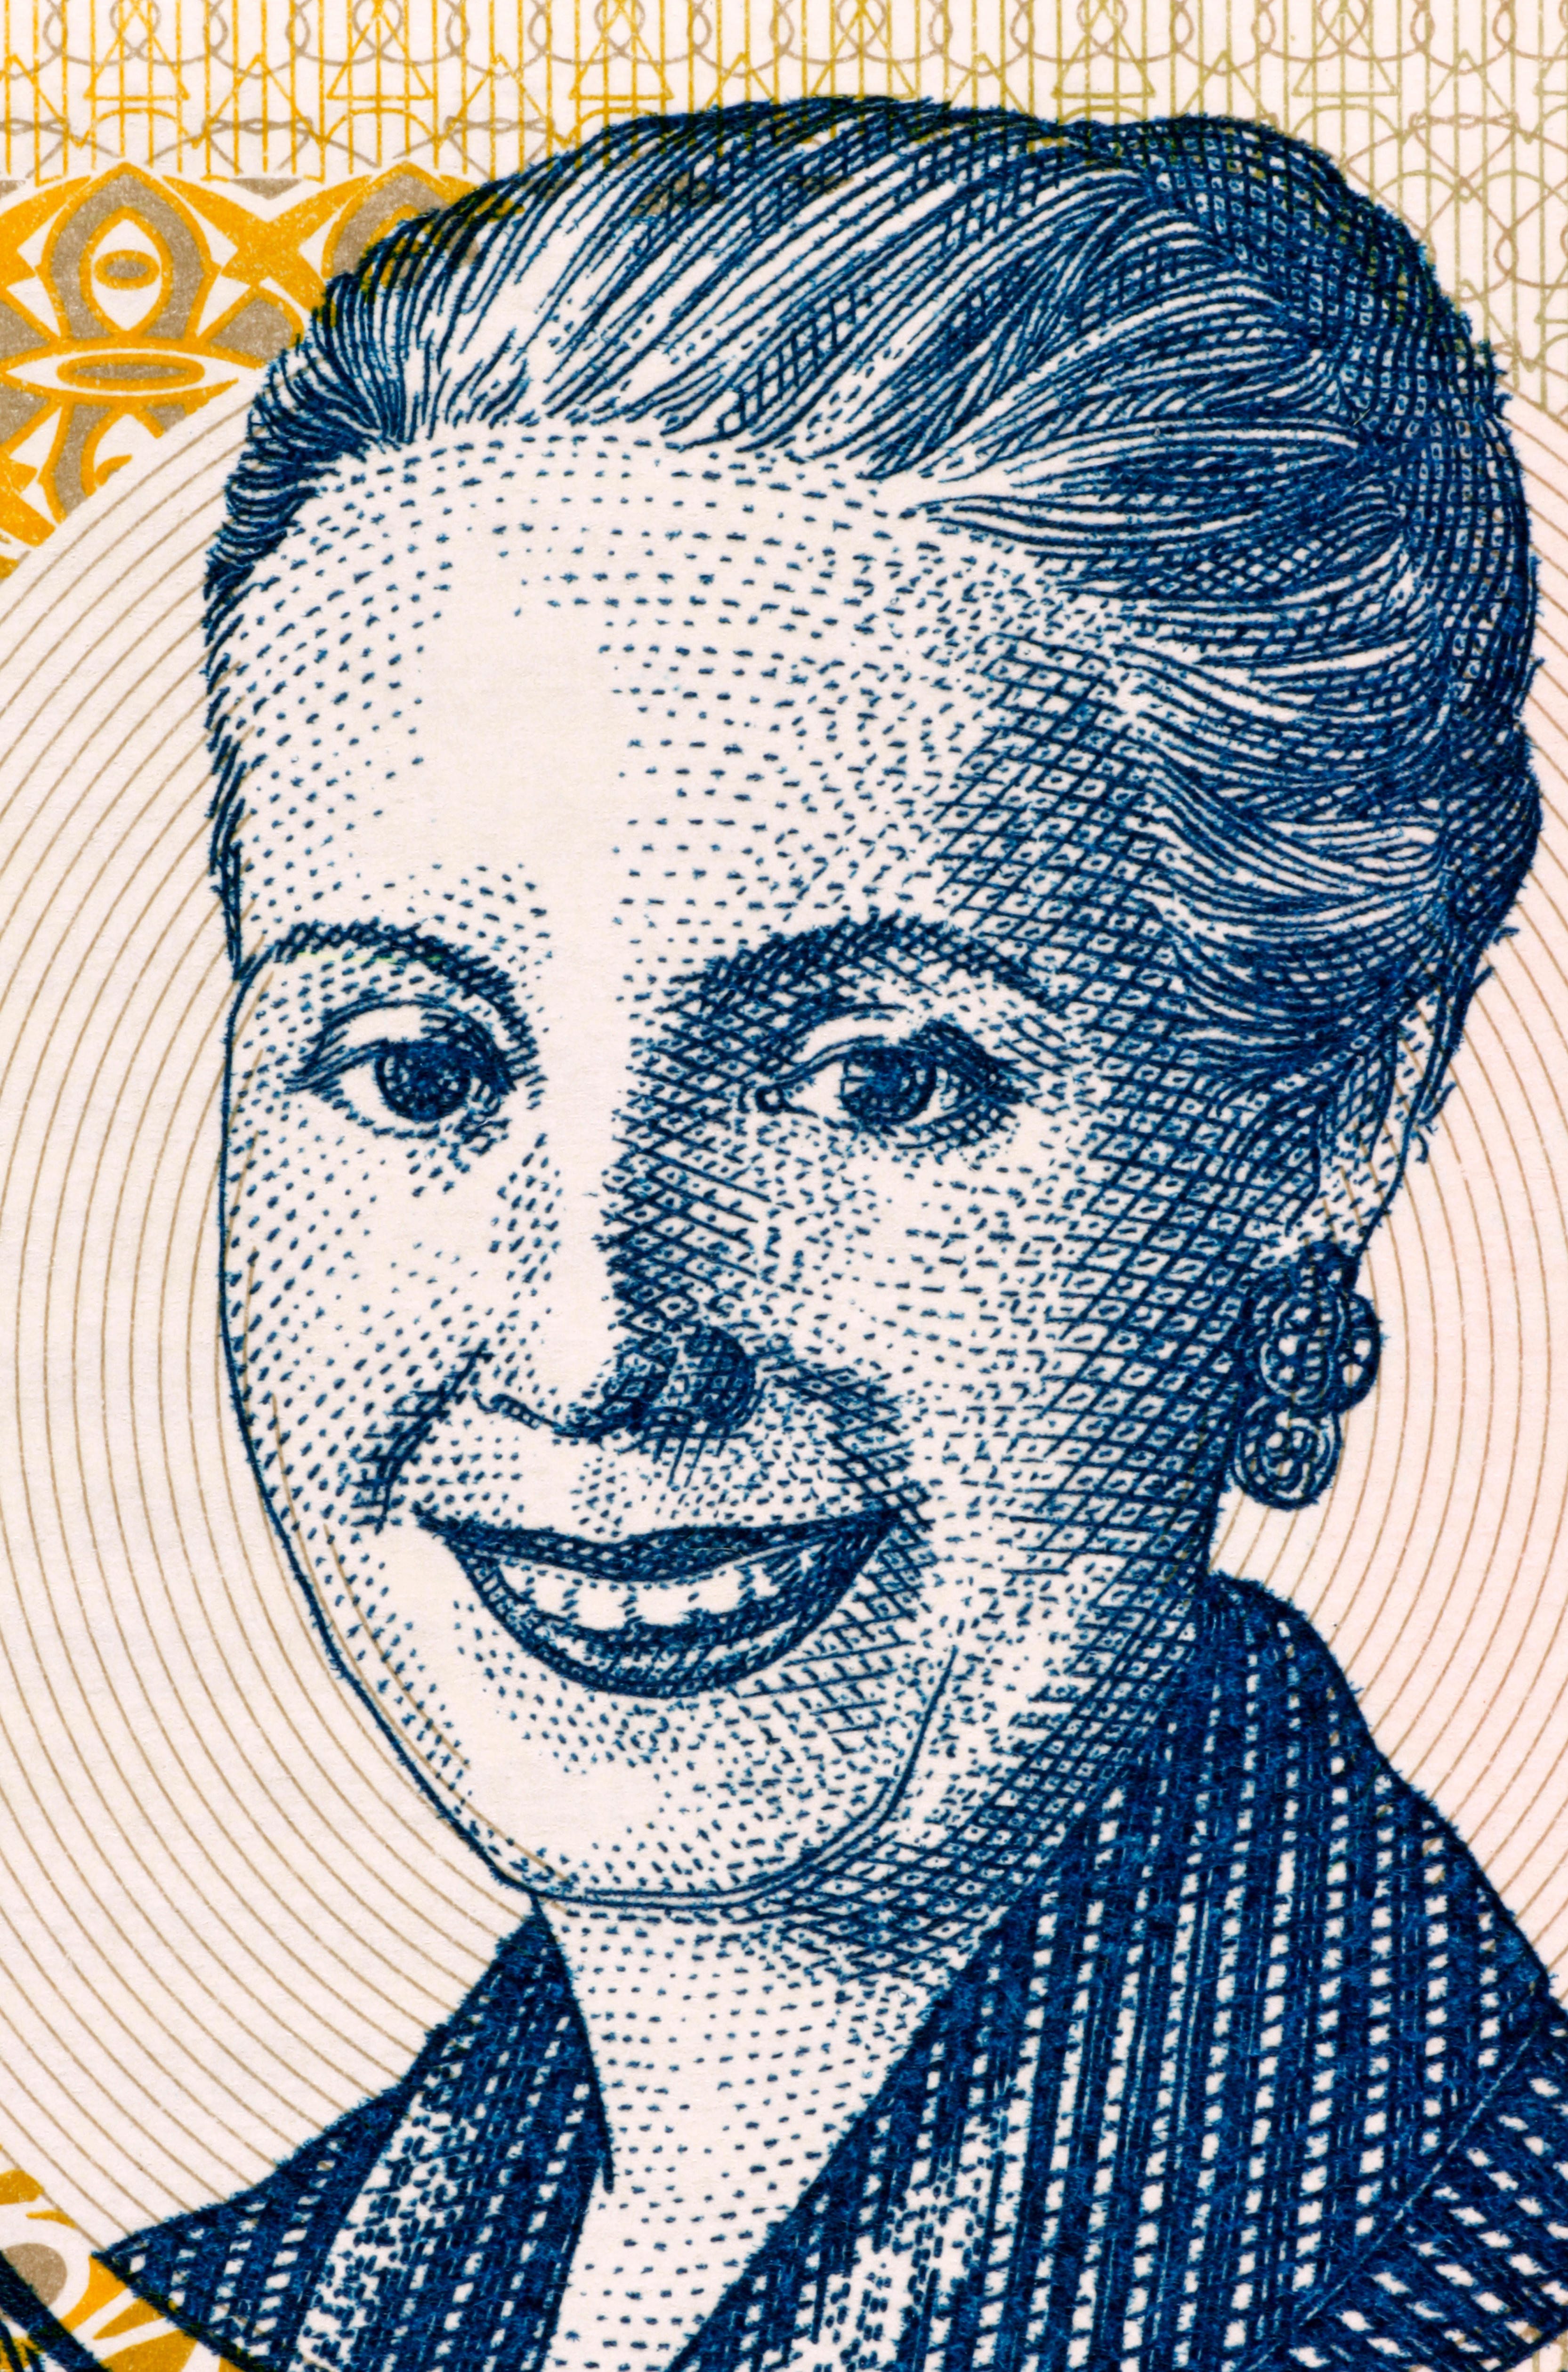 Eva Peron (1919-1952) on 2 Pesos 2001 Banknote from Argentina. Second wife of President Juan Peron.